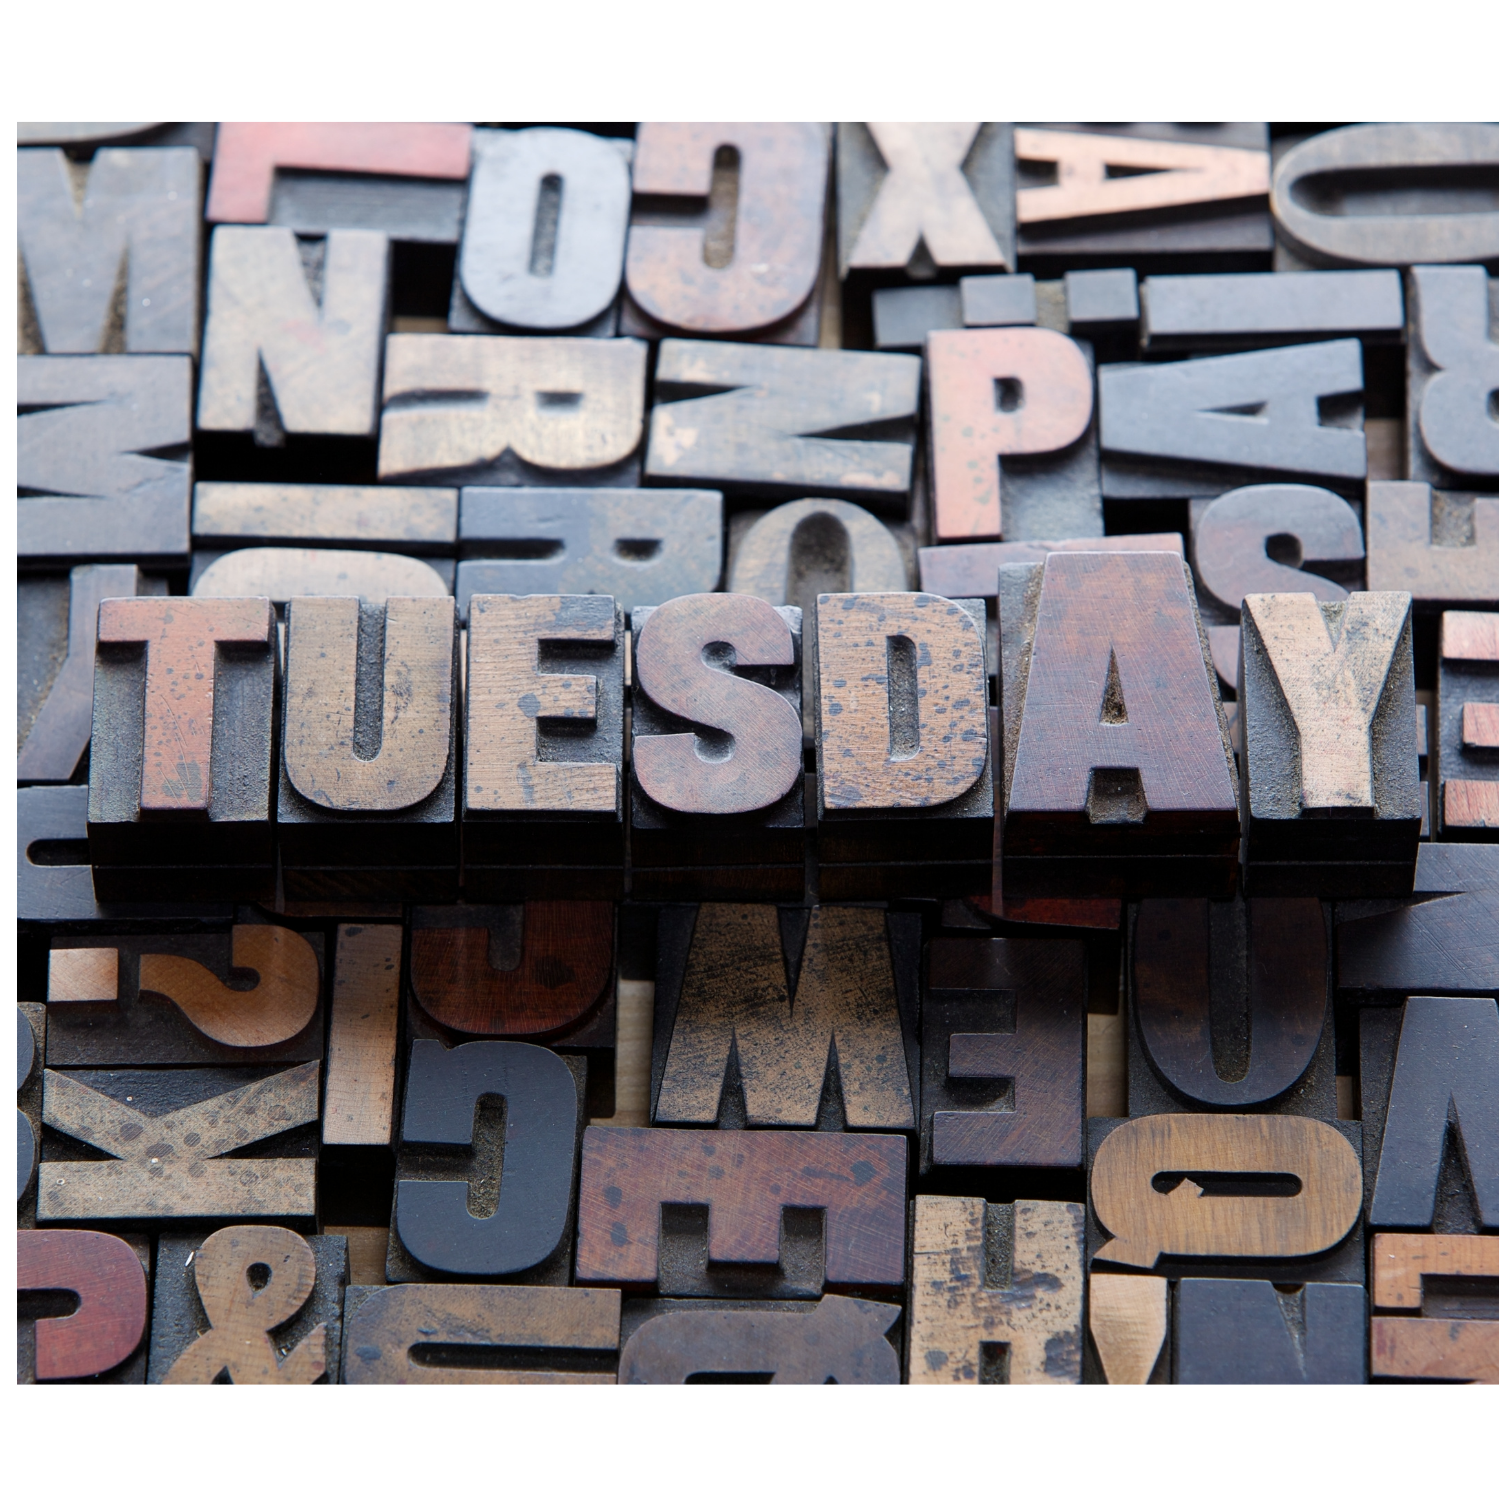 shopping hours - Tuesdays